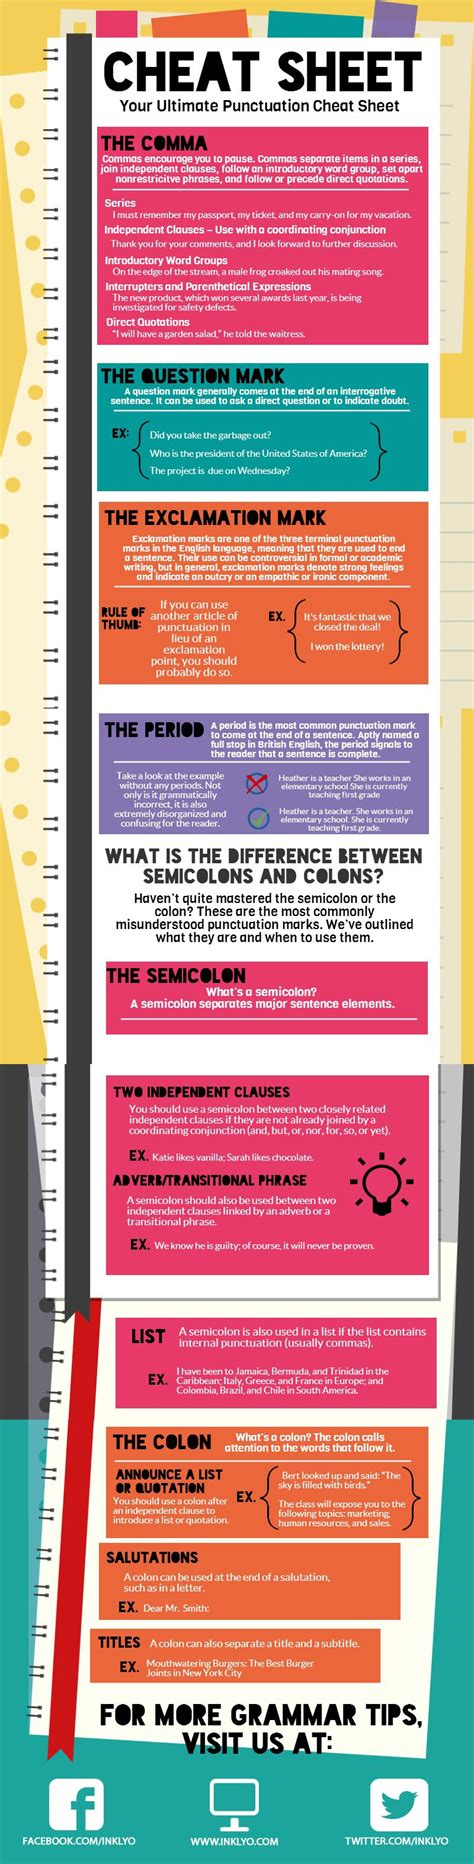 4th edition the ultimate guide to sat grammar the ultimate punctuation sheet